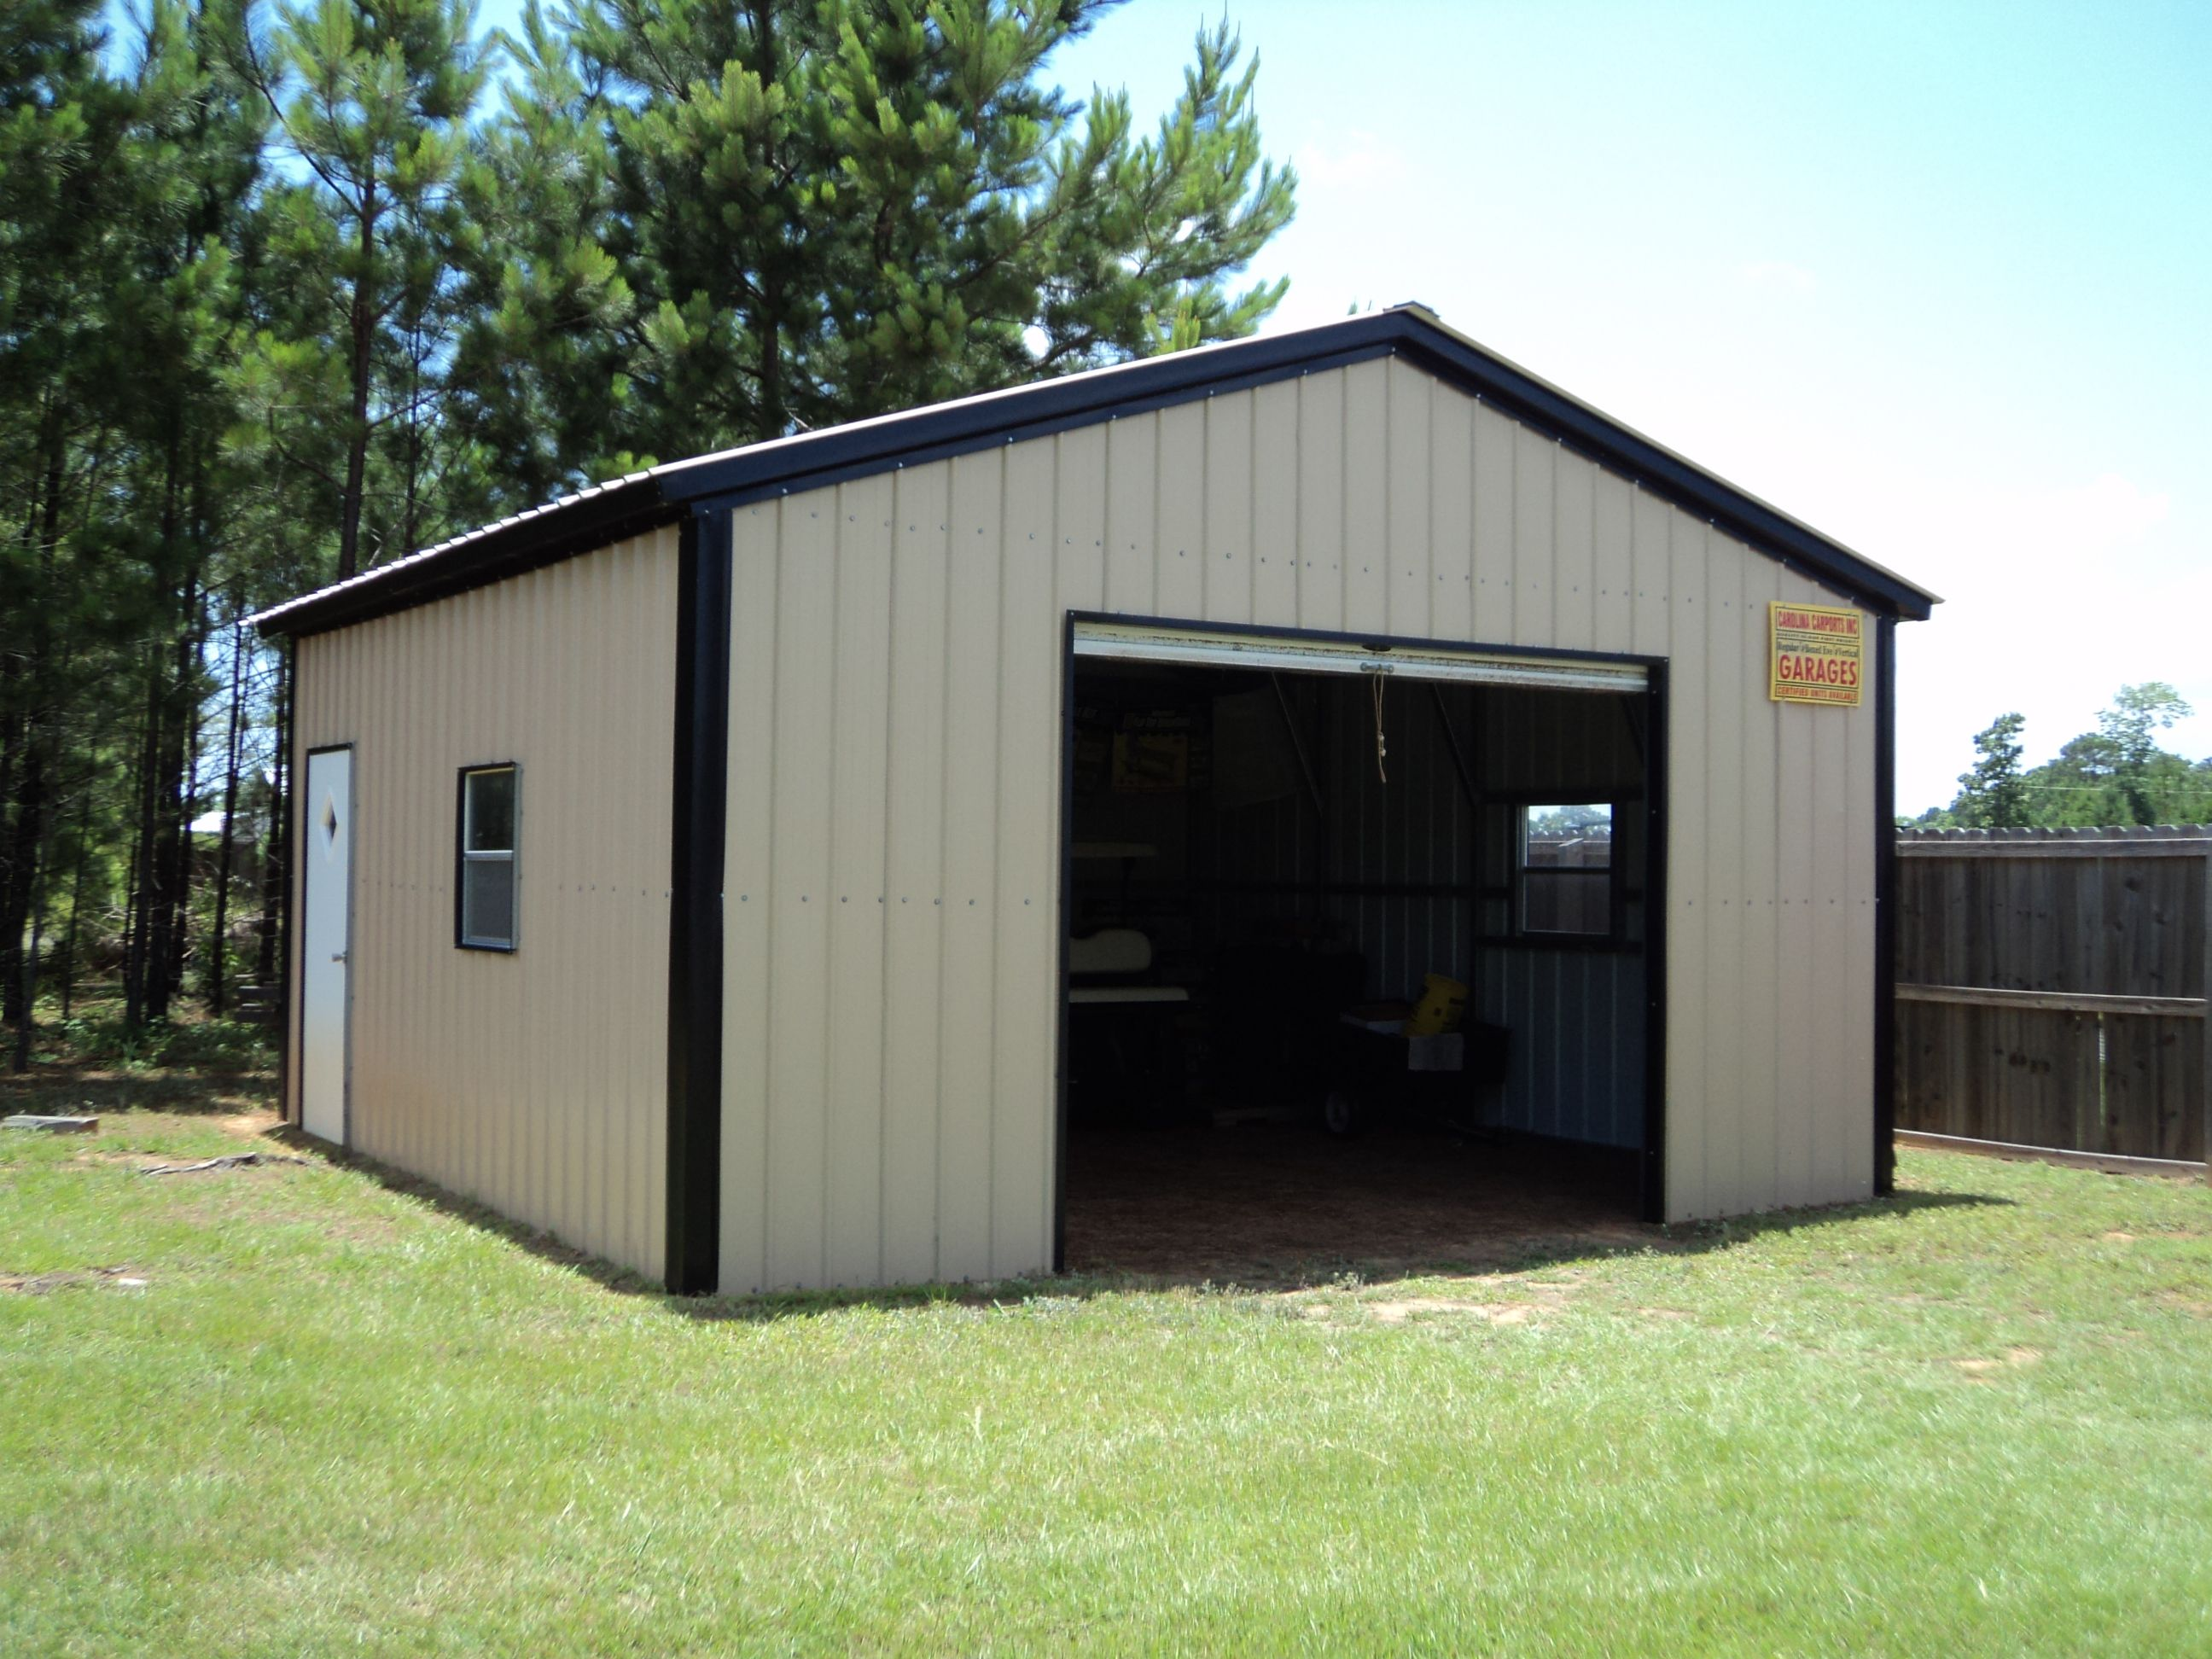 18 x 21 x 9 all vertical garage choice metal buildings for Carport shop